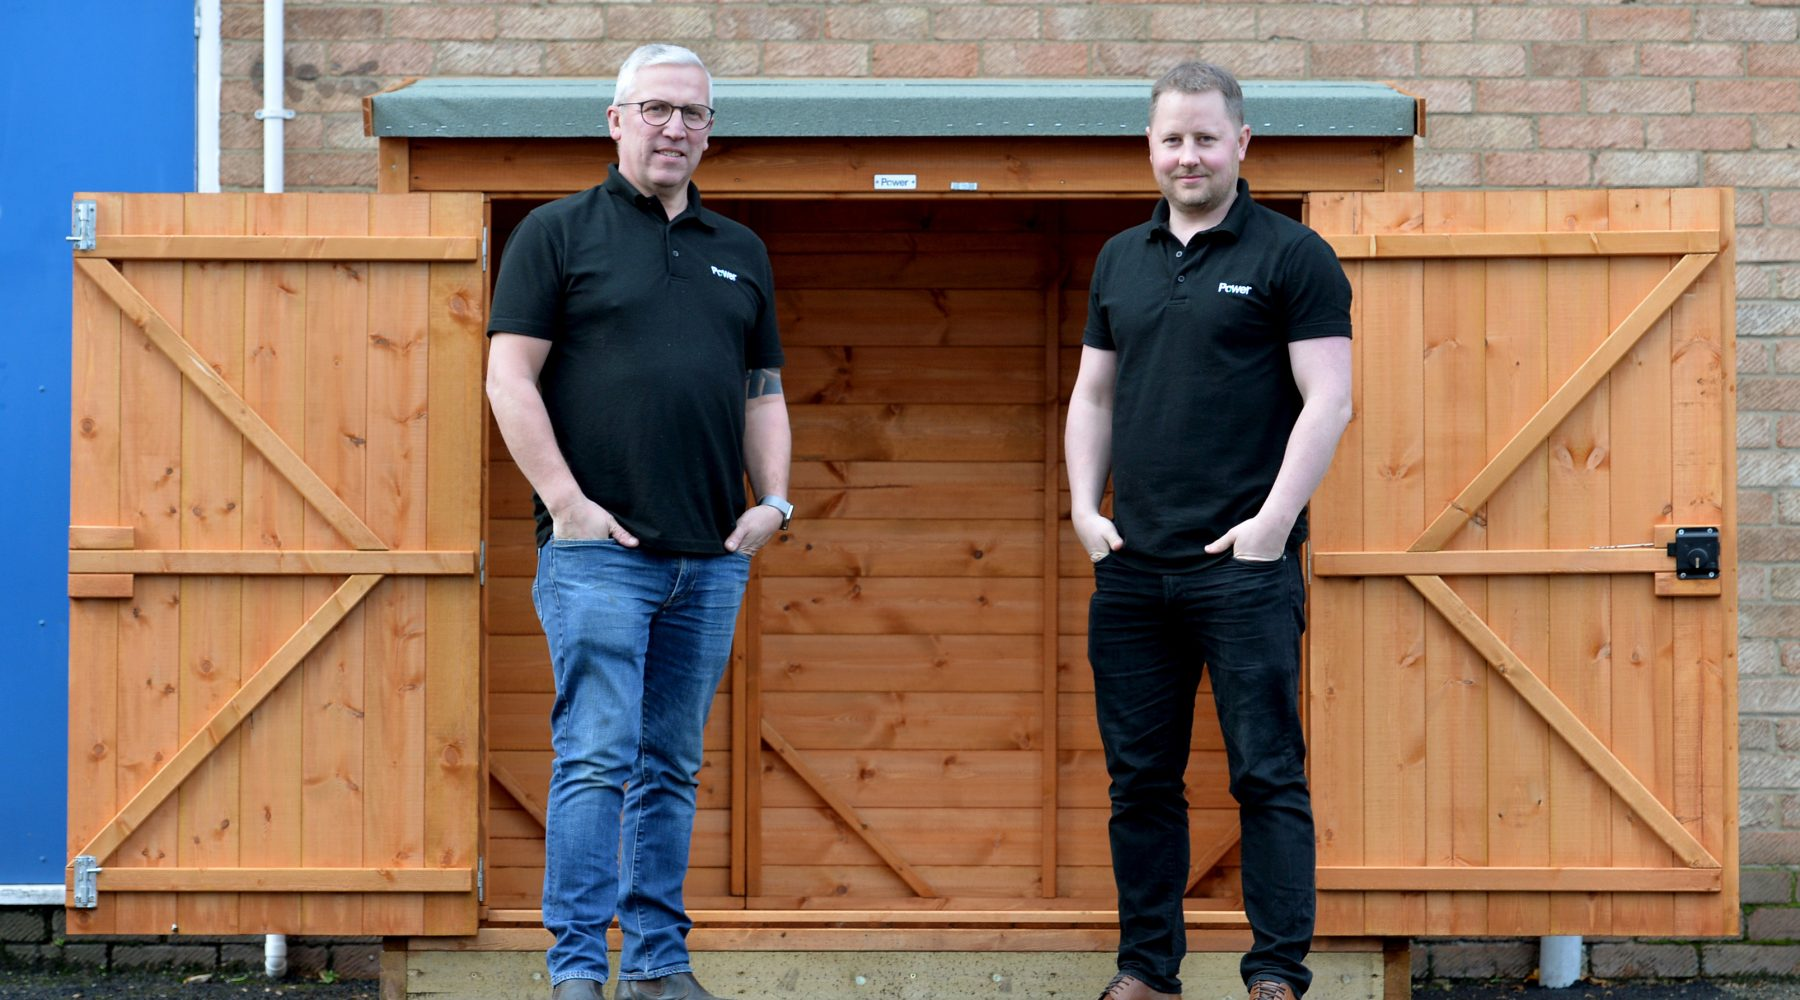 Bradford manufacturer Power Sheds in line for TWO…